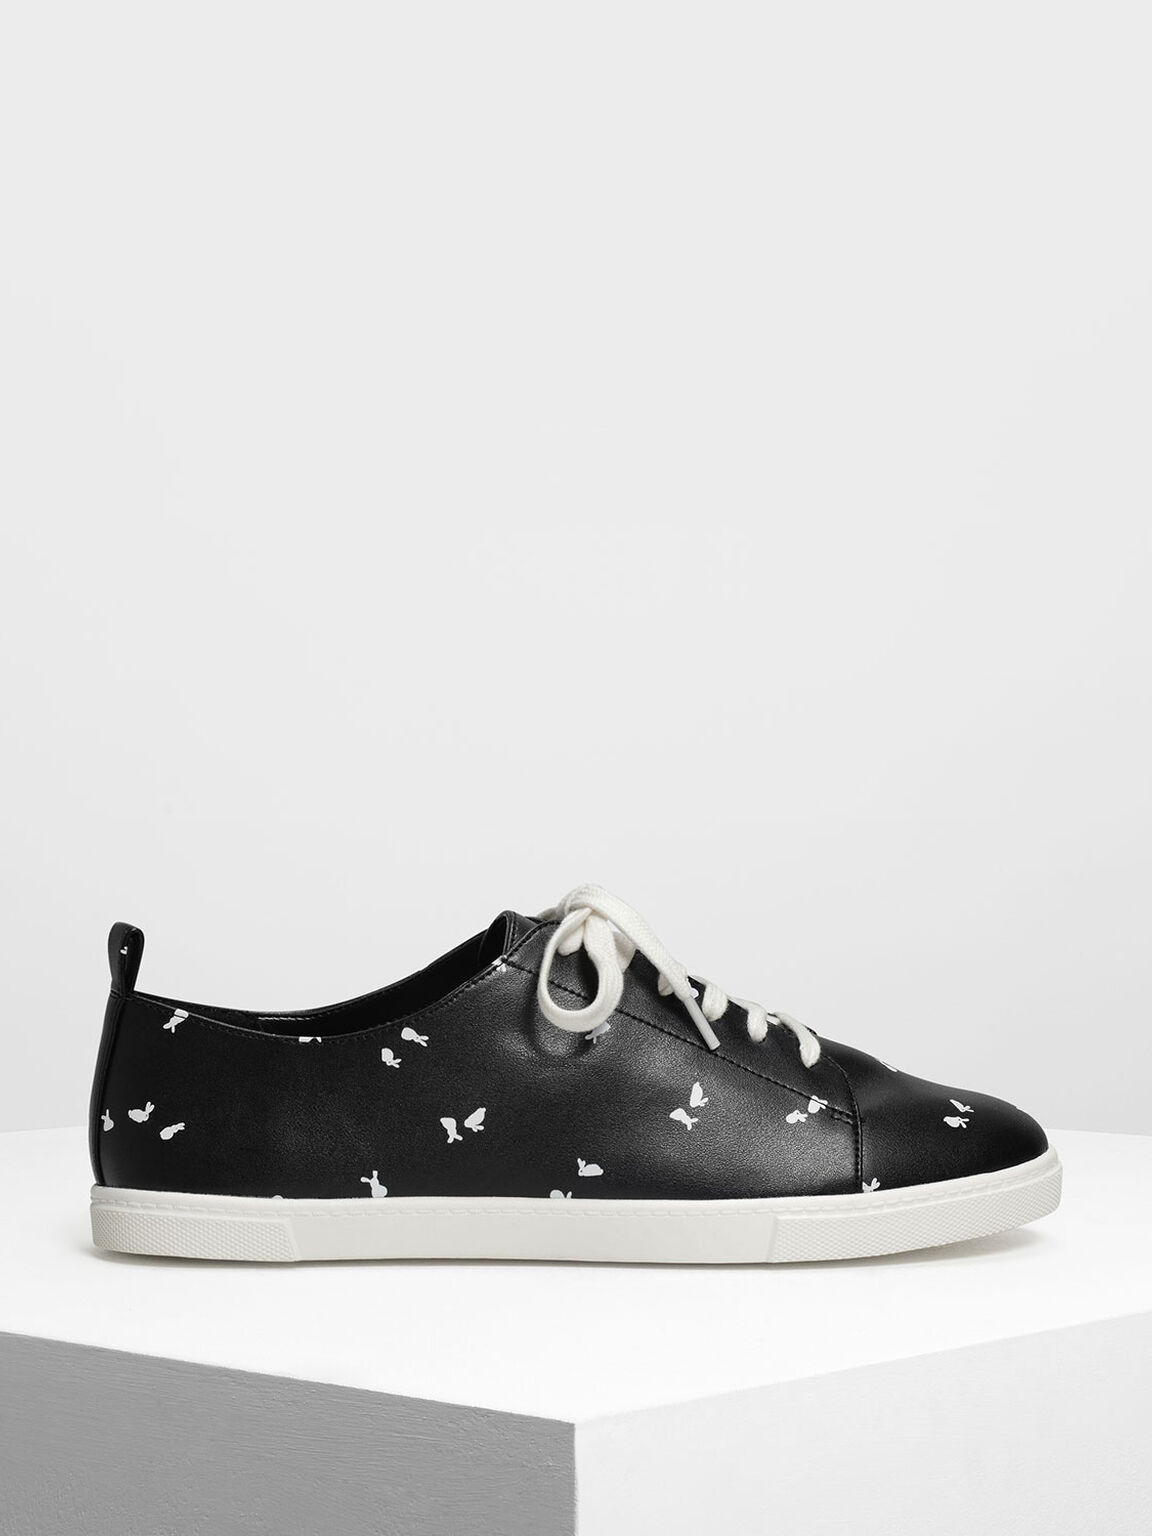 Bunny Print Sneakers, Black Textured, hi-res